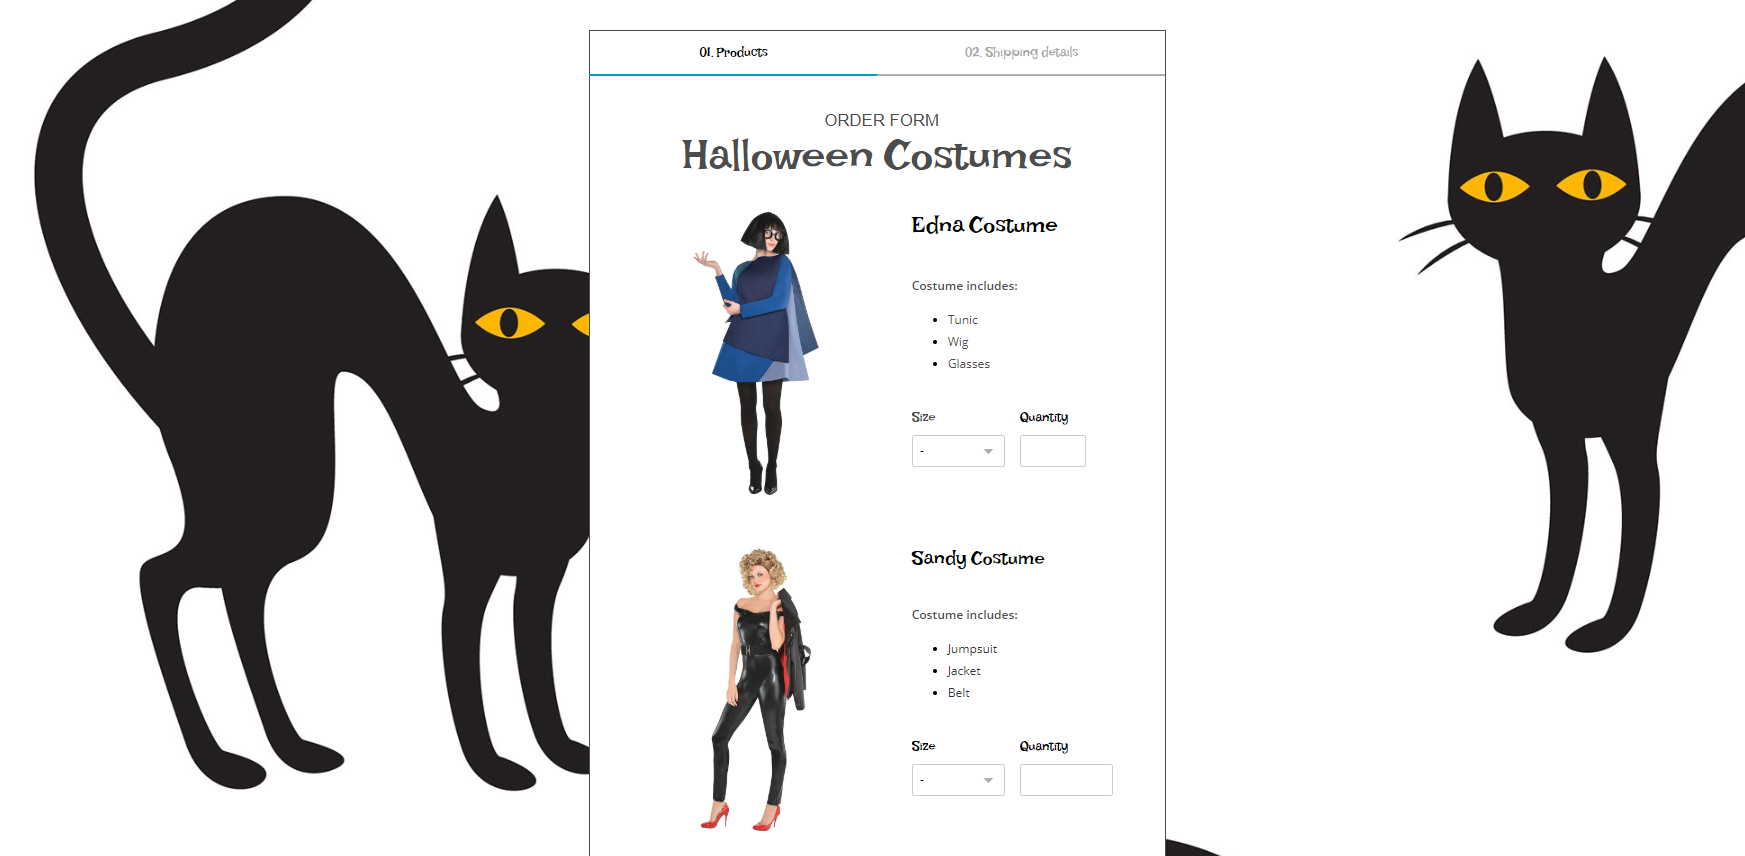 Halloween costume order form